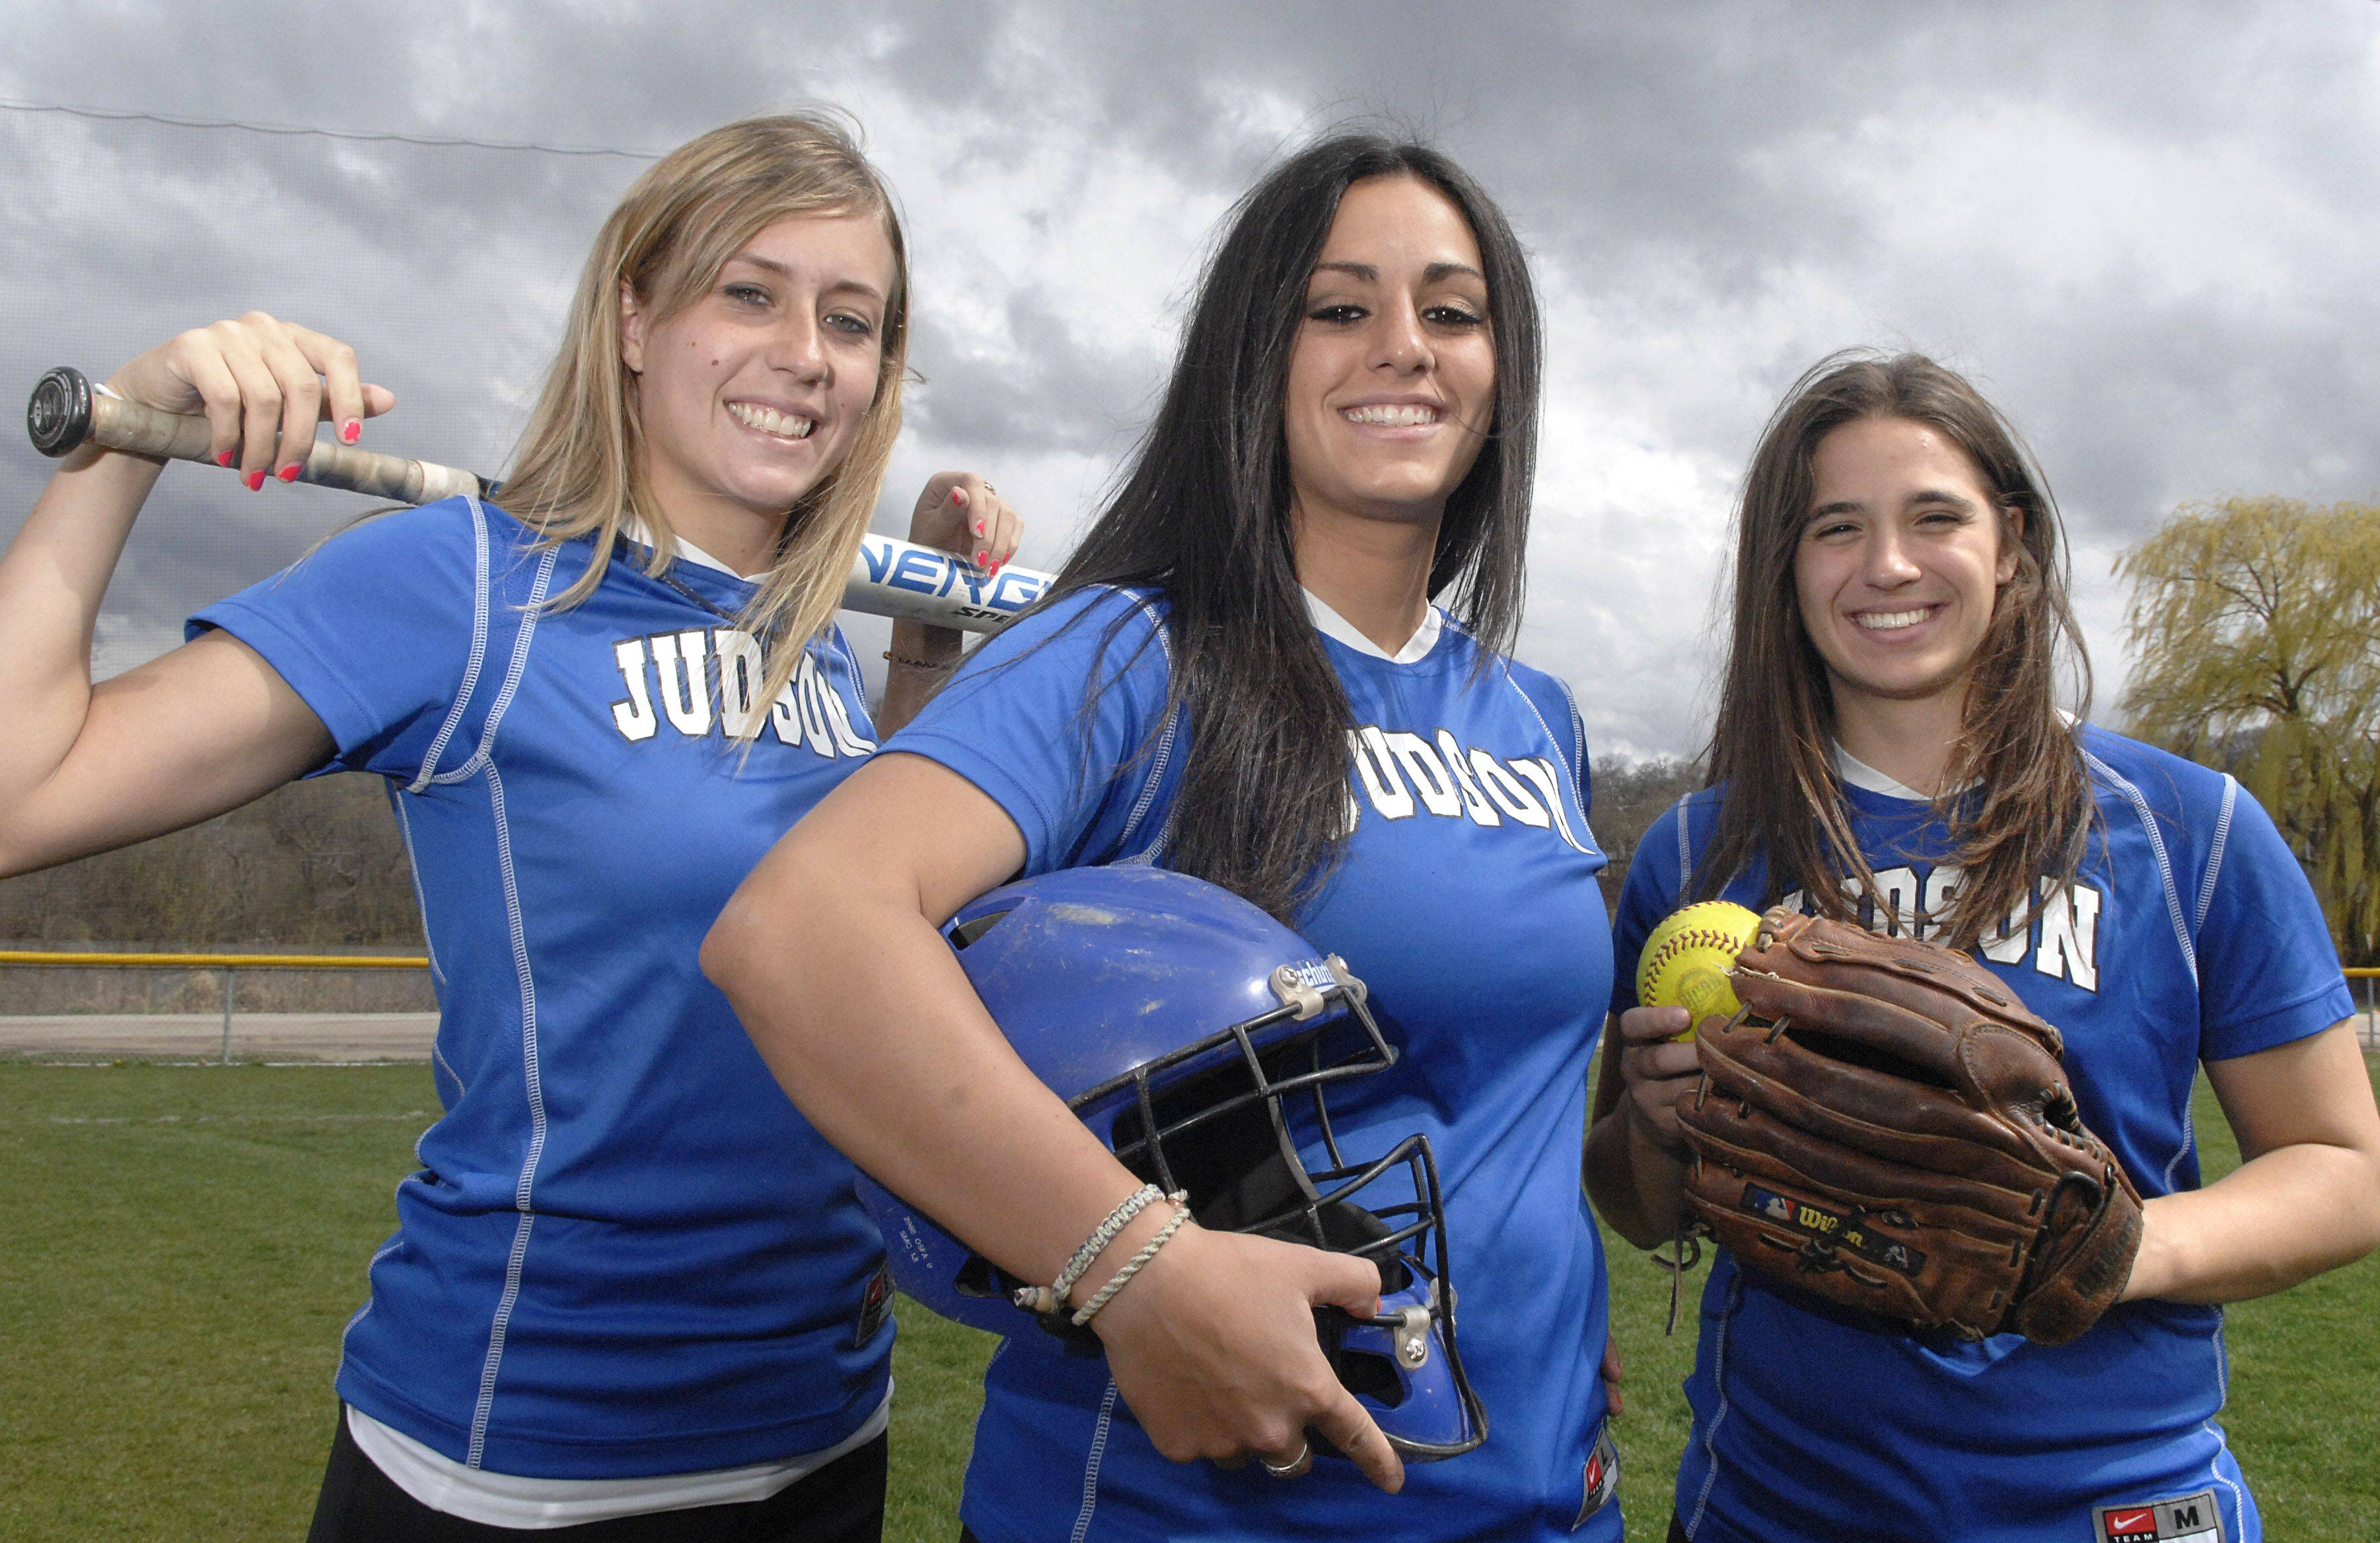 Judson softball seniors Carrie Sensor, from left, Nicole Dimiceli and Kristin Krueger have led the Eagles to a 31-13 season that has included the program's first conference championship.